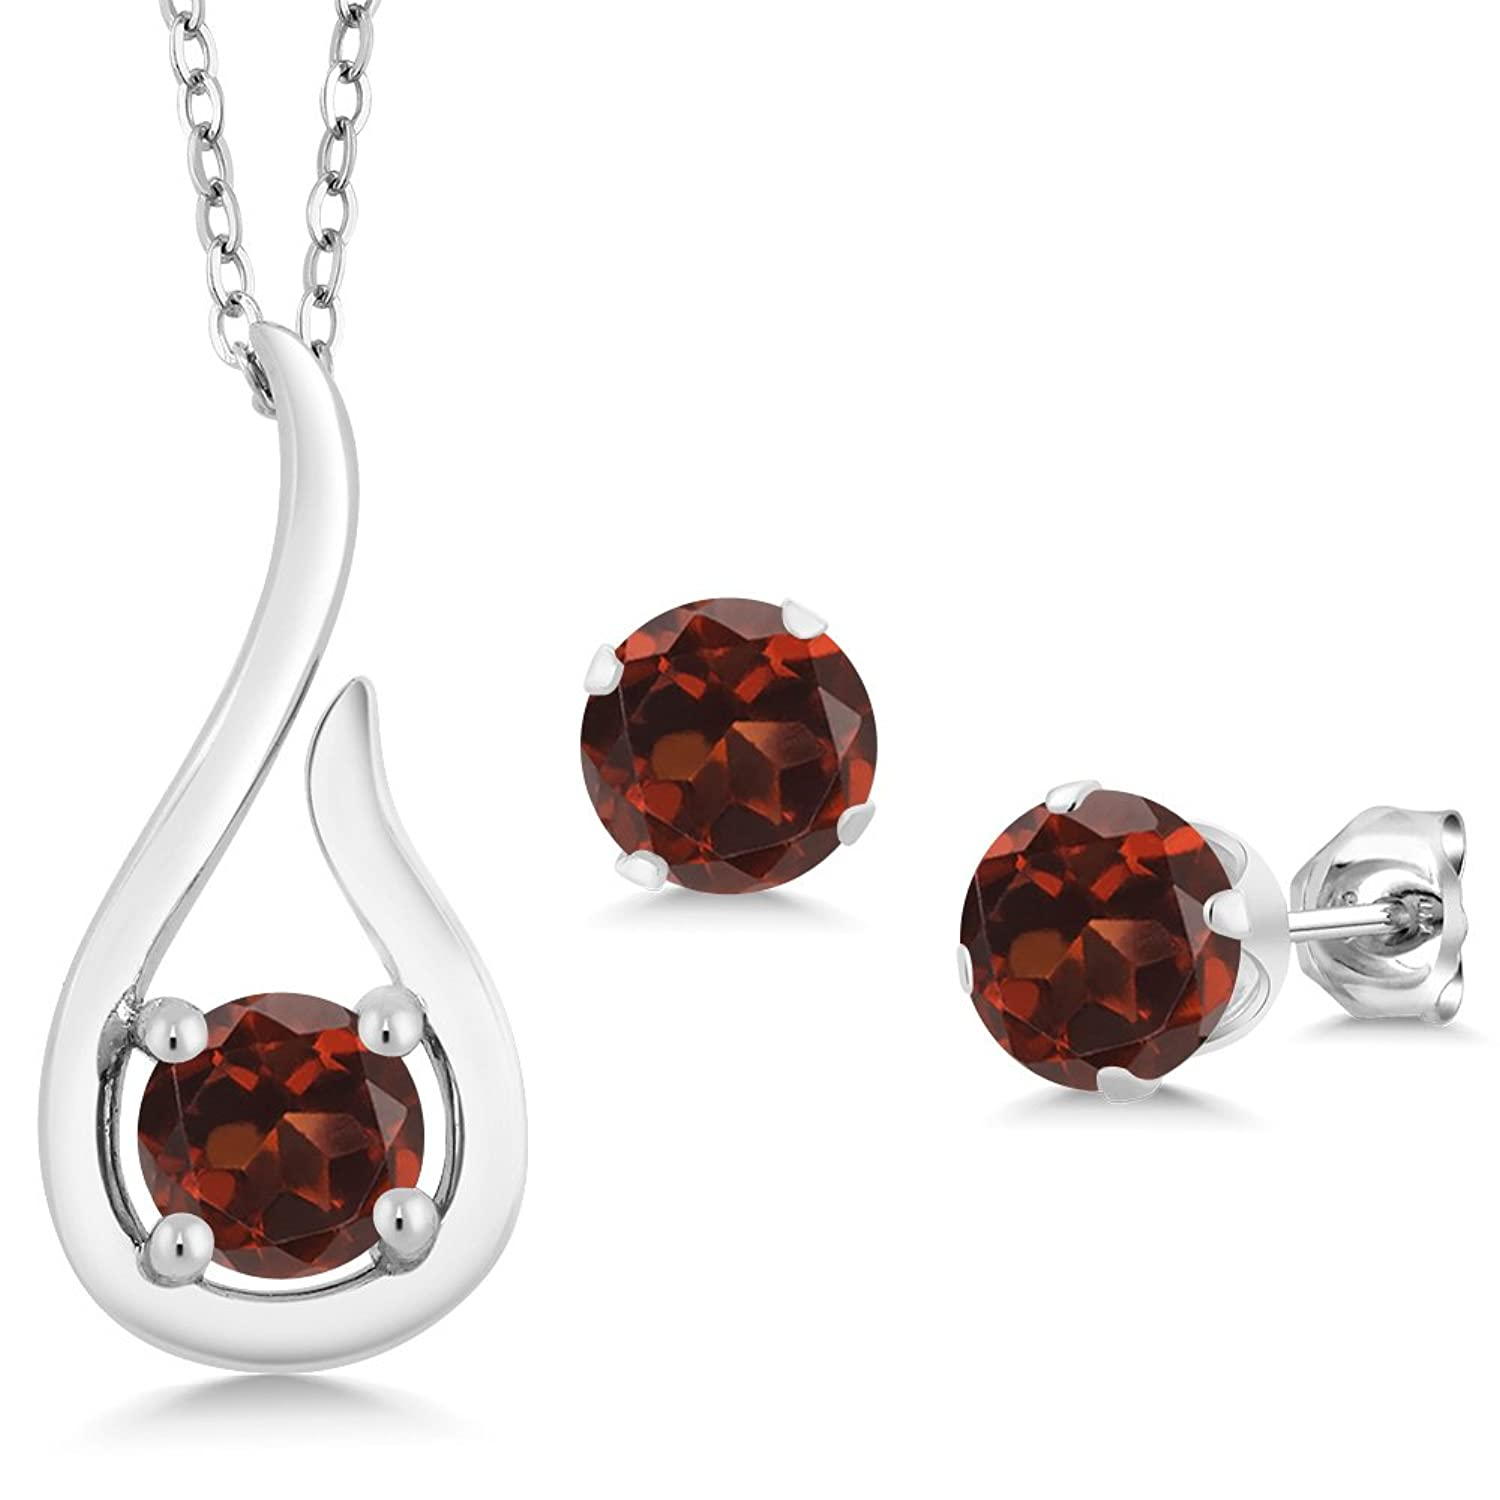 1.80 Ct Round Red Garnet 925 Sterling Silver Pendant Earrings Set With Chain